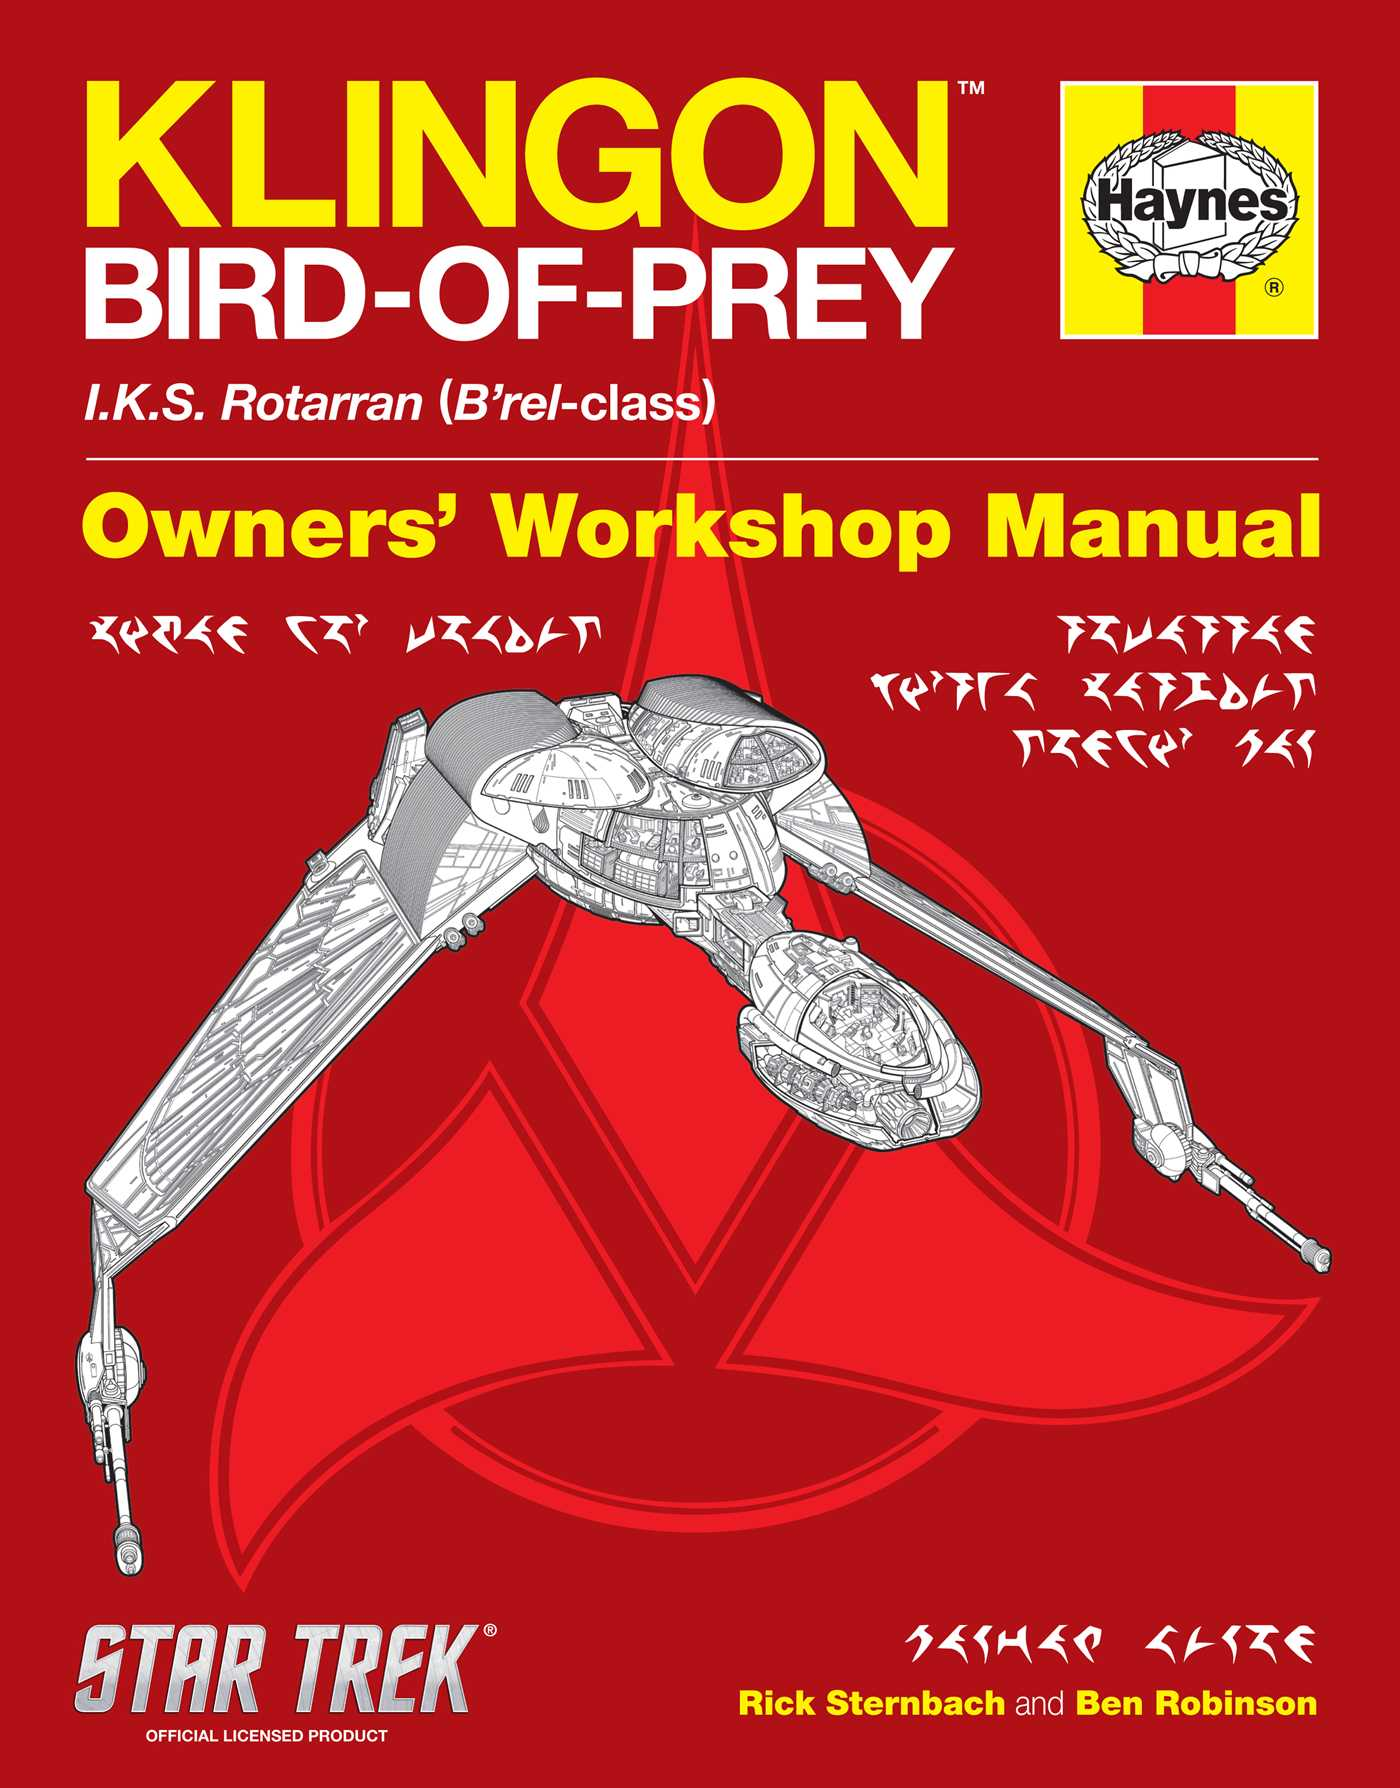 Star trek klingon bird of prey haynes manual 9781476725680 hr